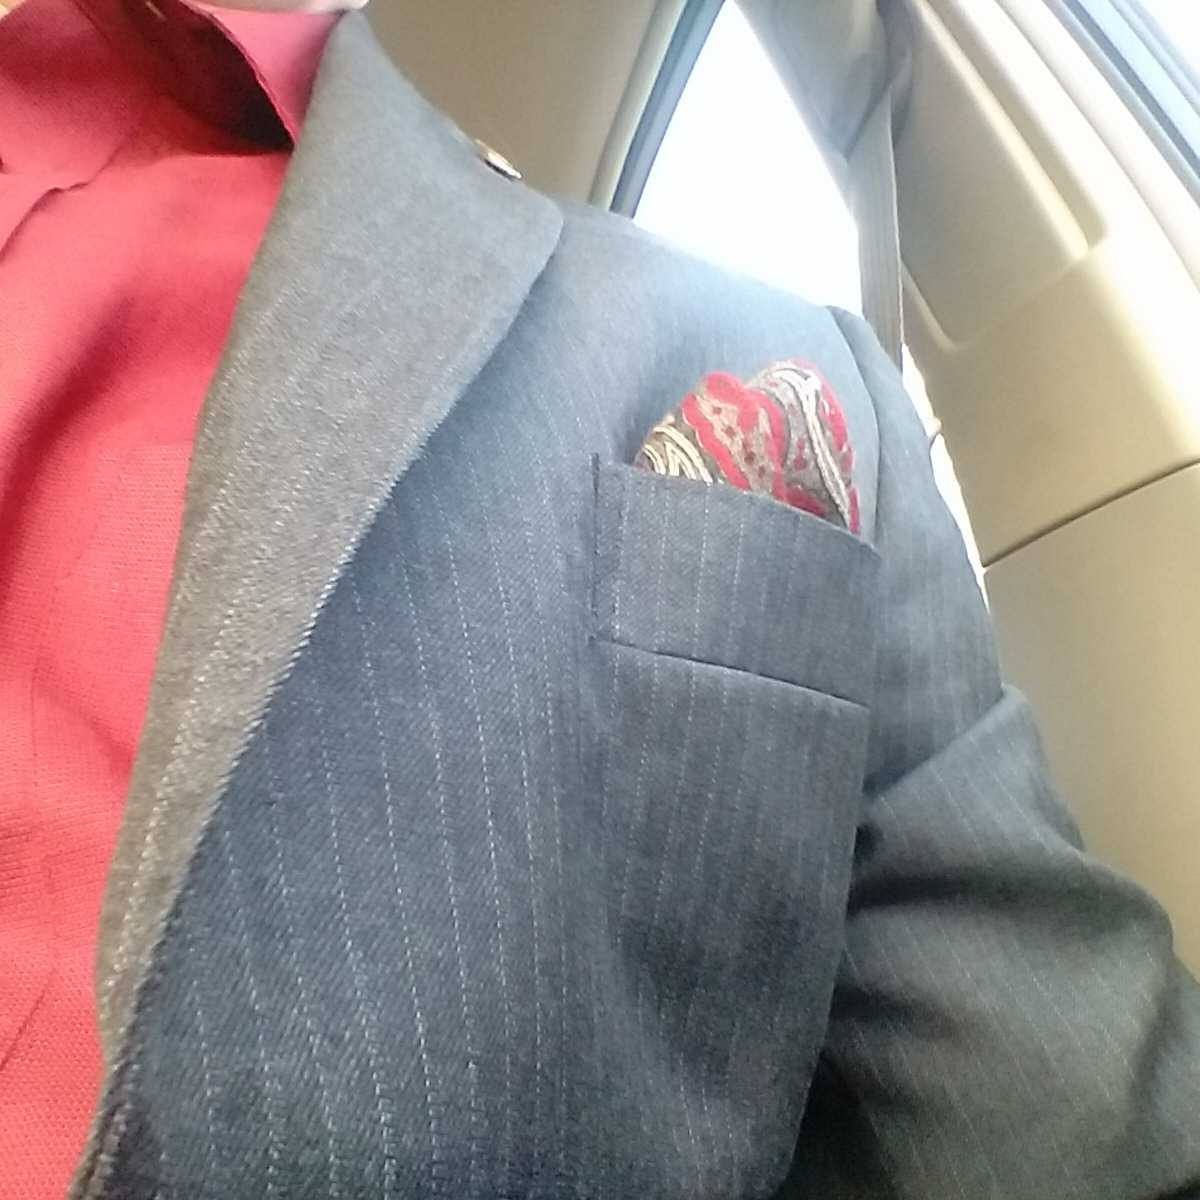 Red shirt, socks and pocket square today in support of the #UWUnitedWay campaign. #UWaterloo https://t.co/IrssjEH9W6